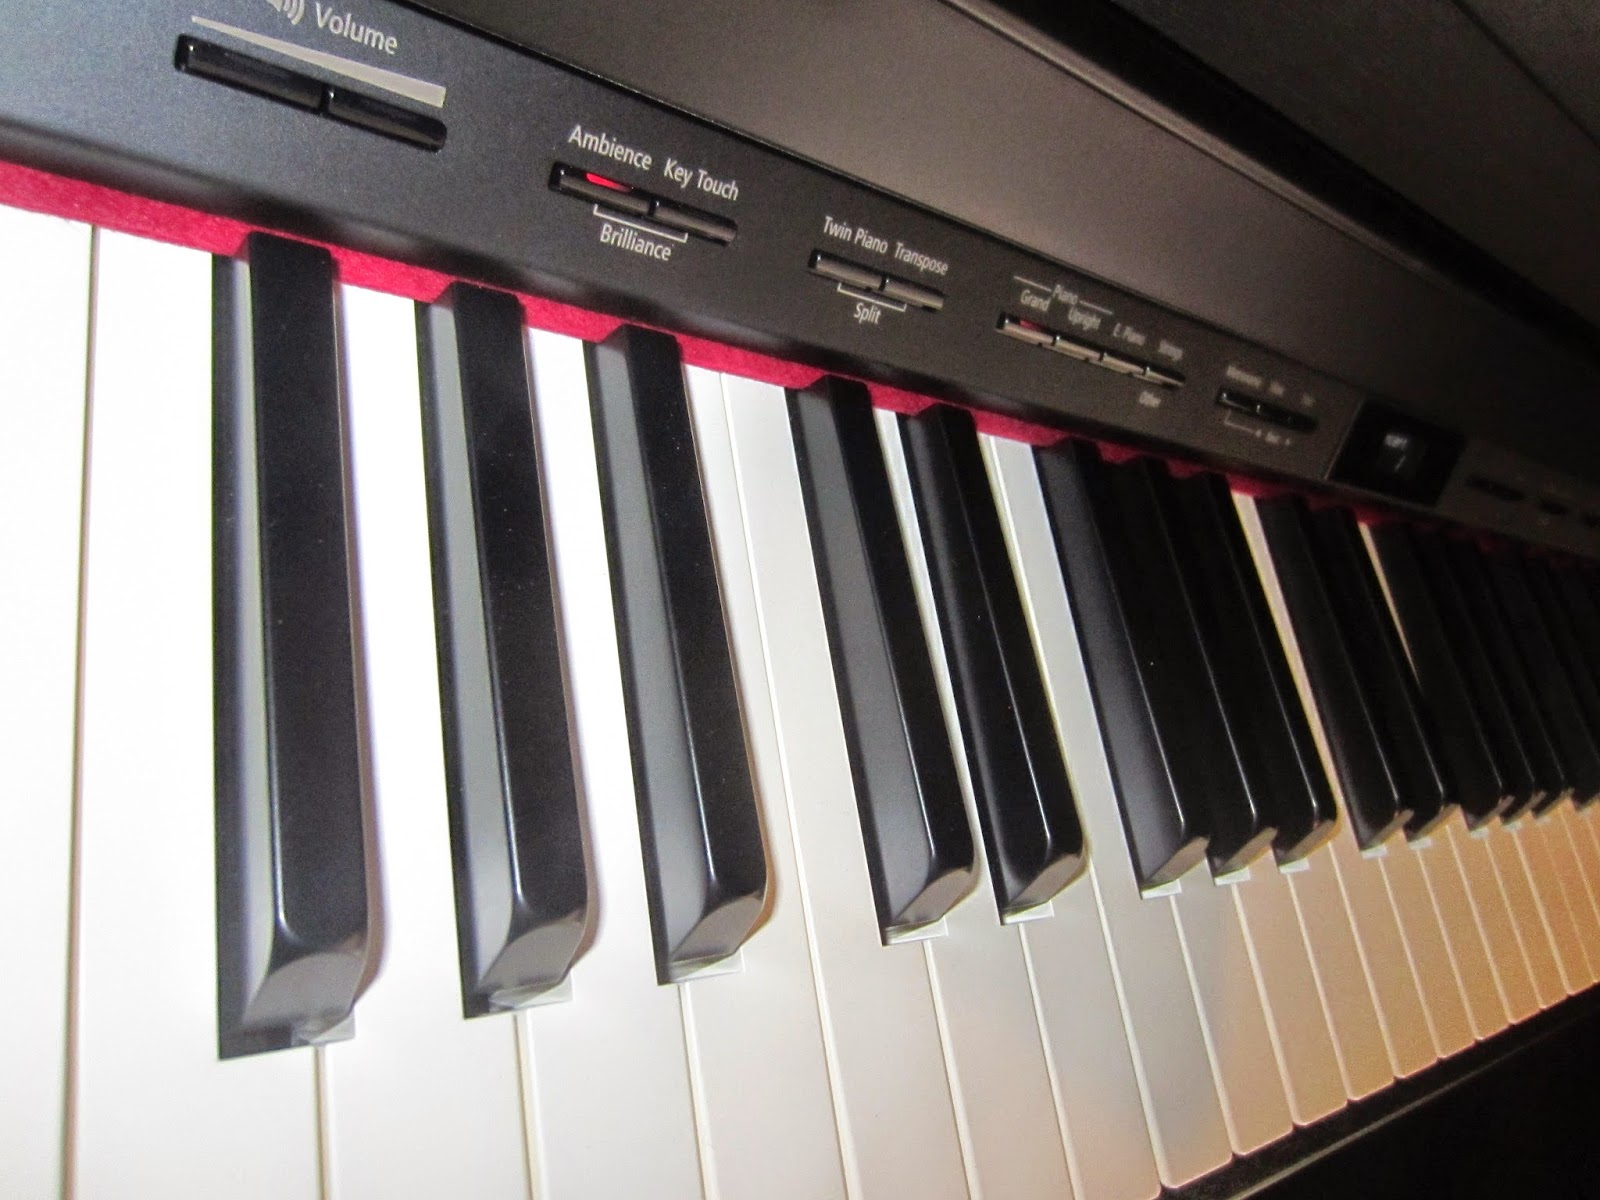 Roland HP504, HP506, HP508 digital pianos